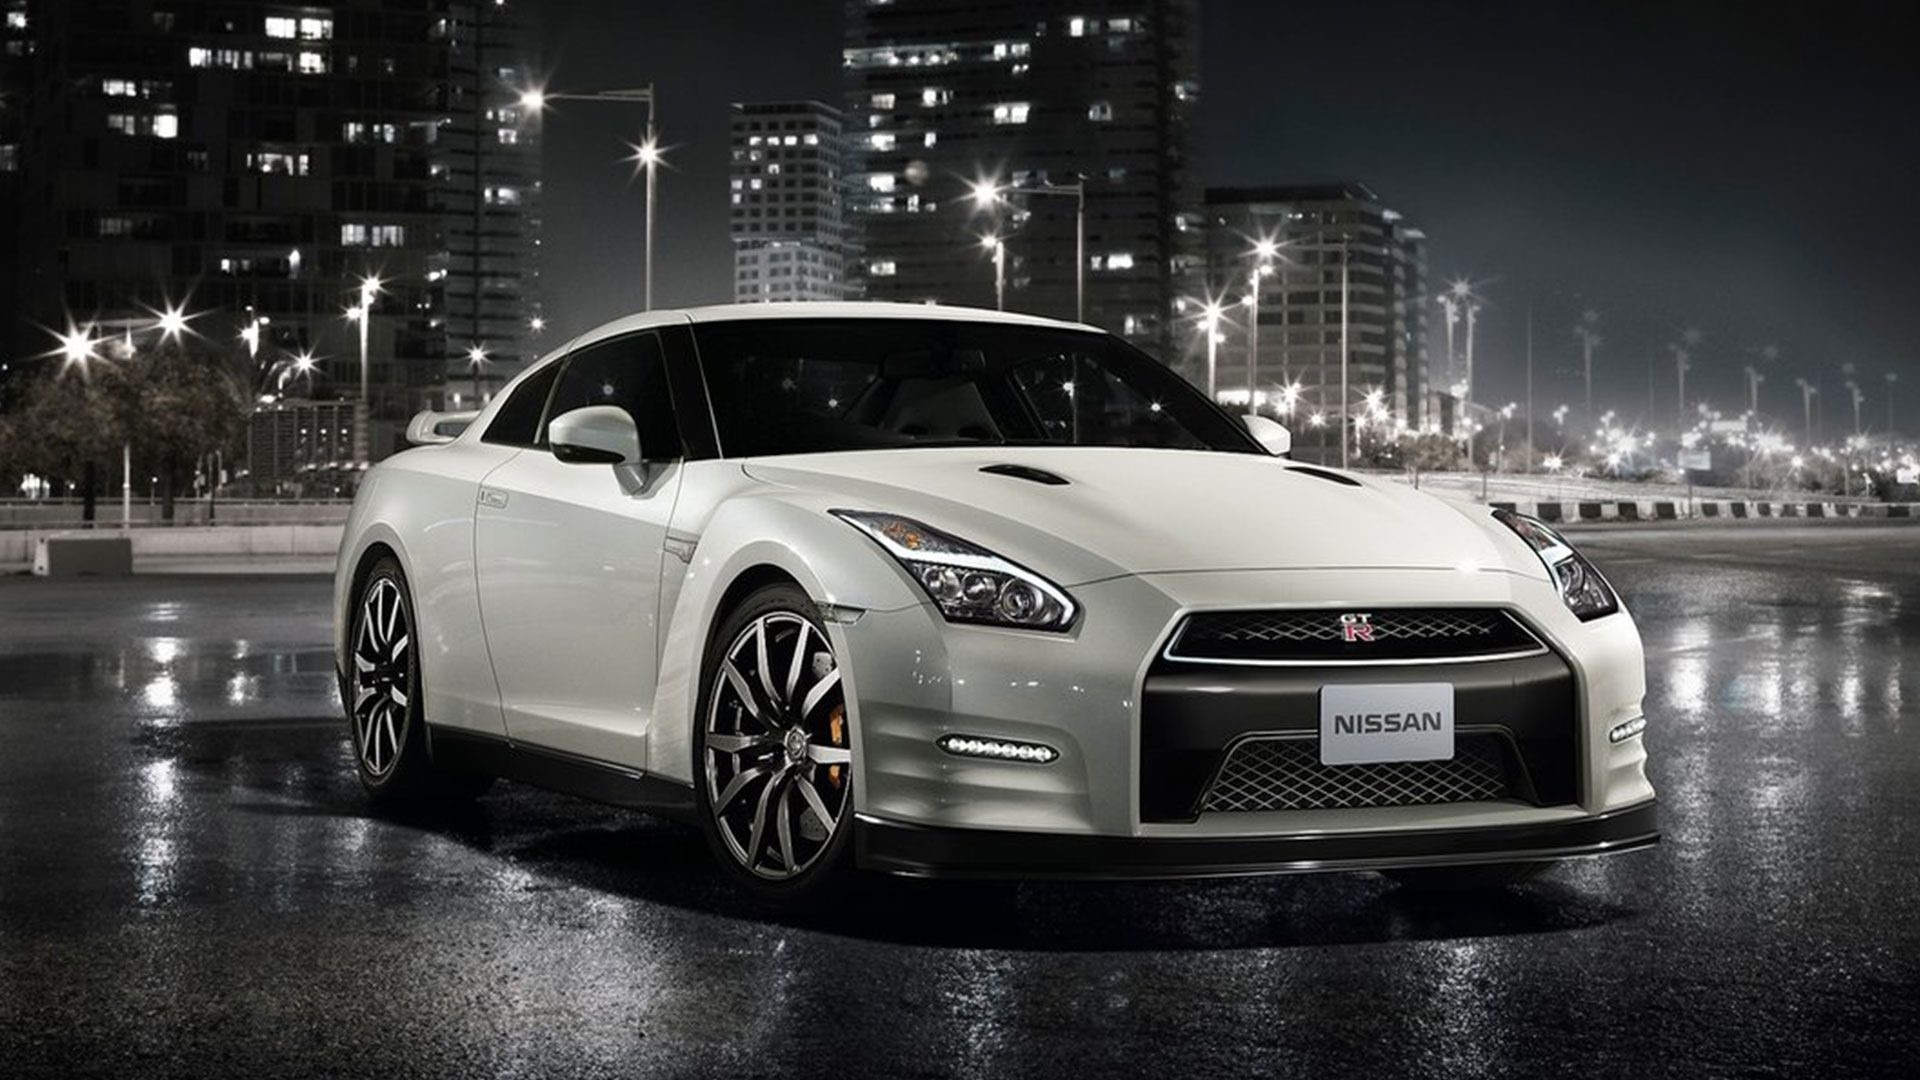 Nissan skyline gtr wallpapers 74 background pictures - Nissan gtr hd wallpaper ...